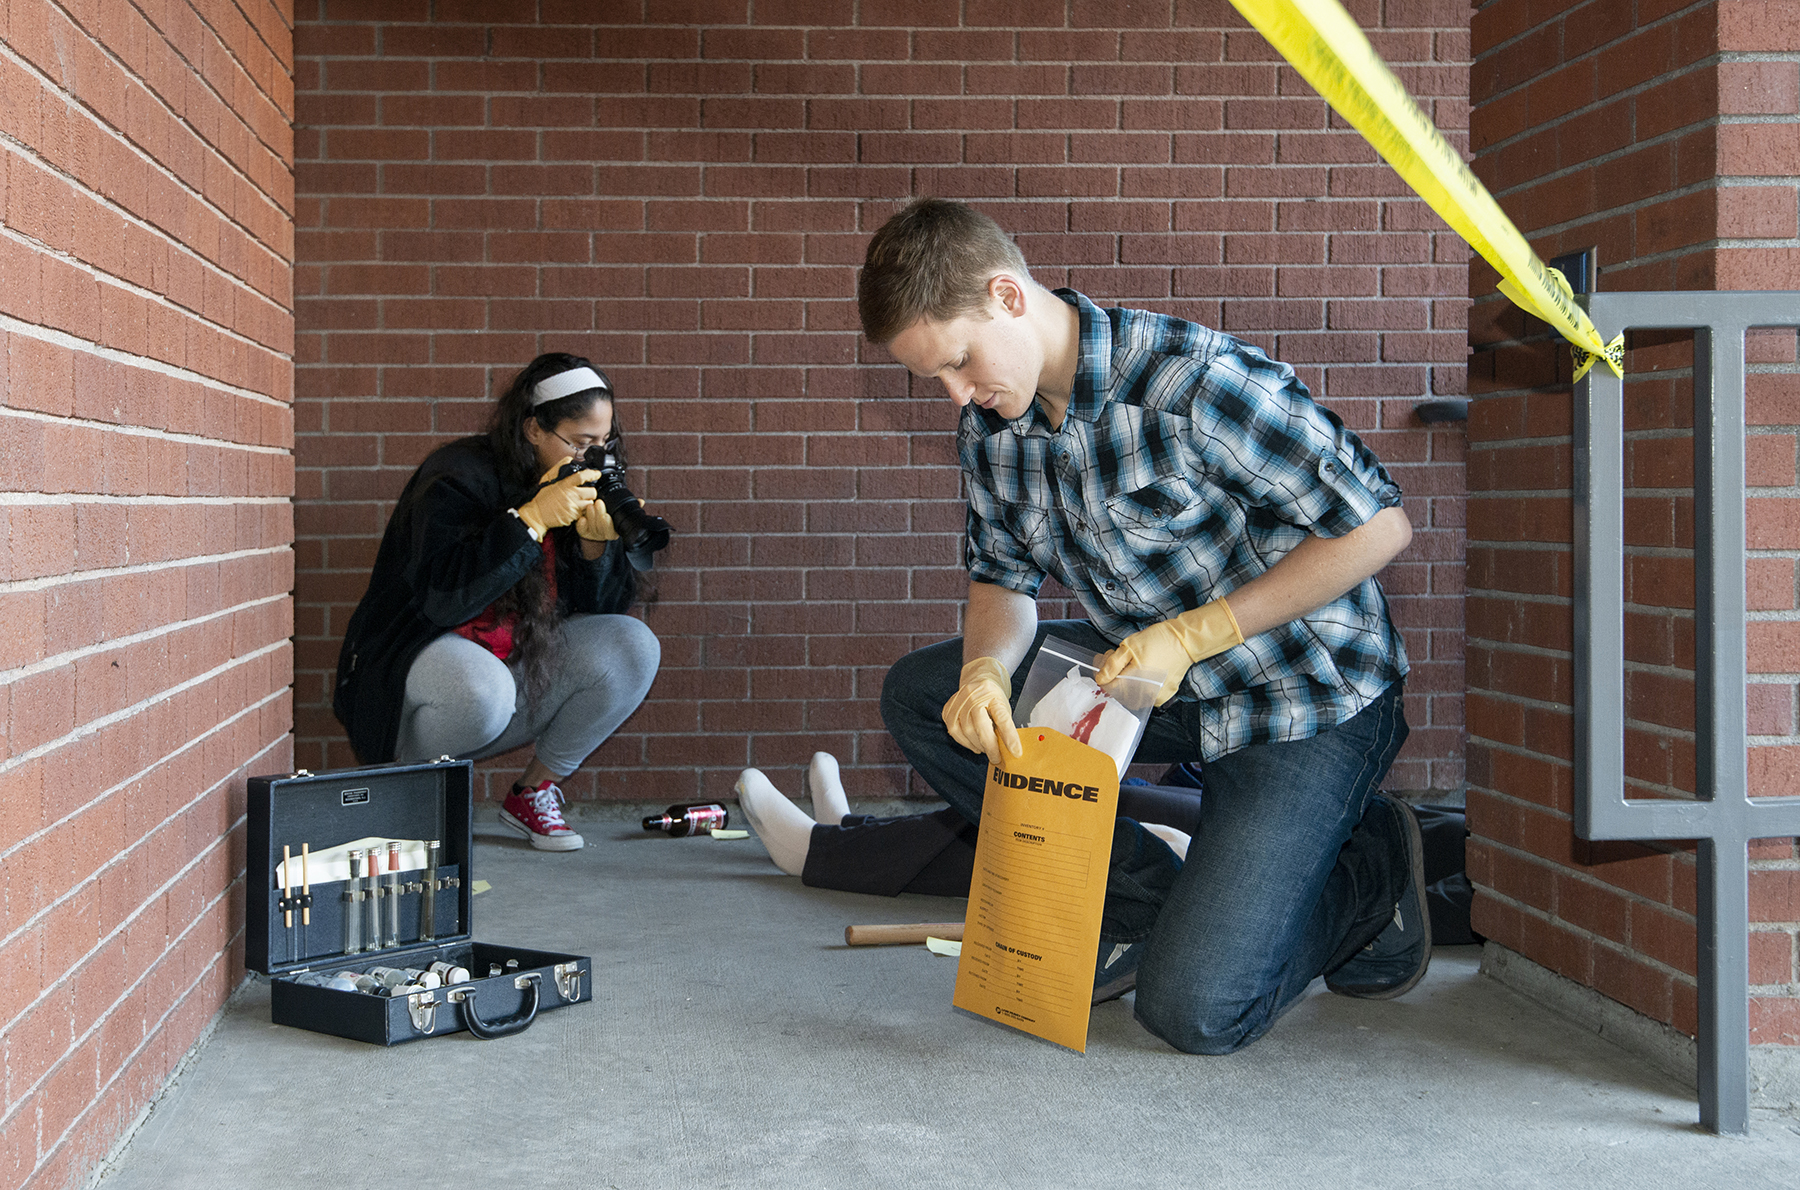 Two students stage a crime scene